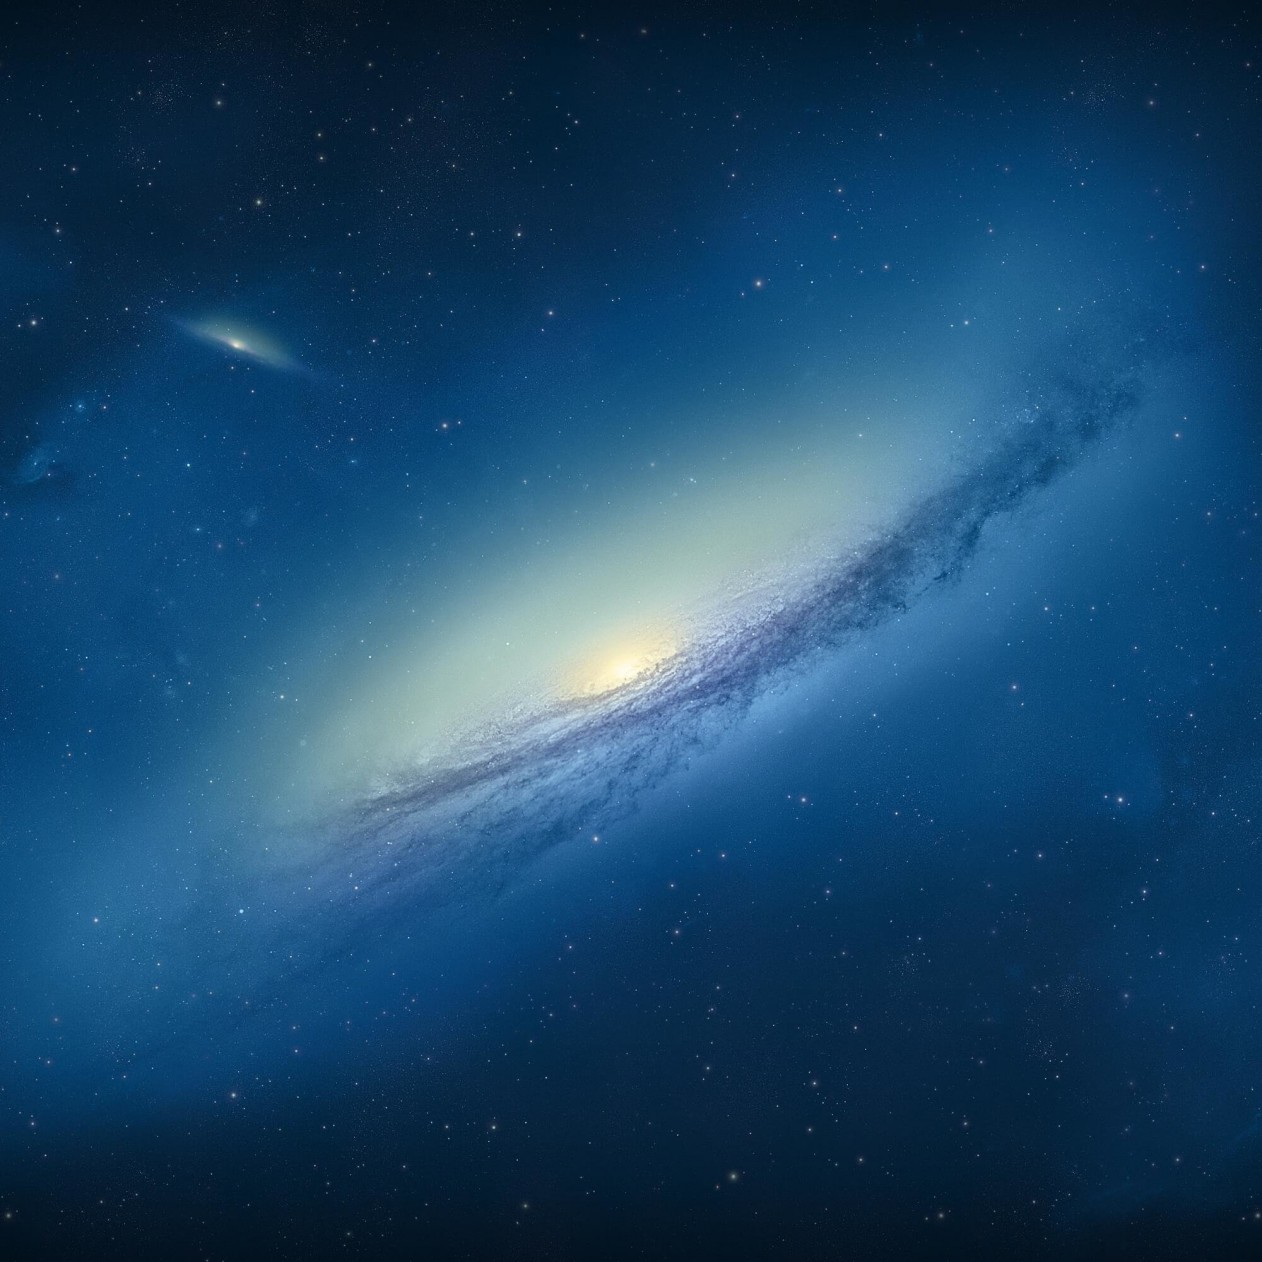 Galaxy NGC 3190 Wallpaper for Apple iPad mini